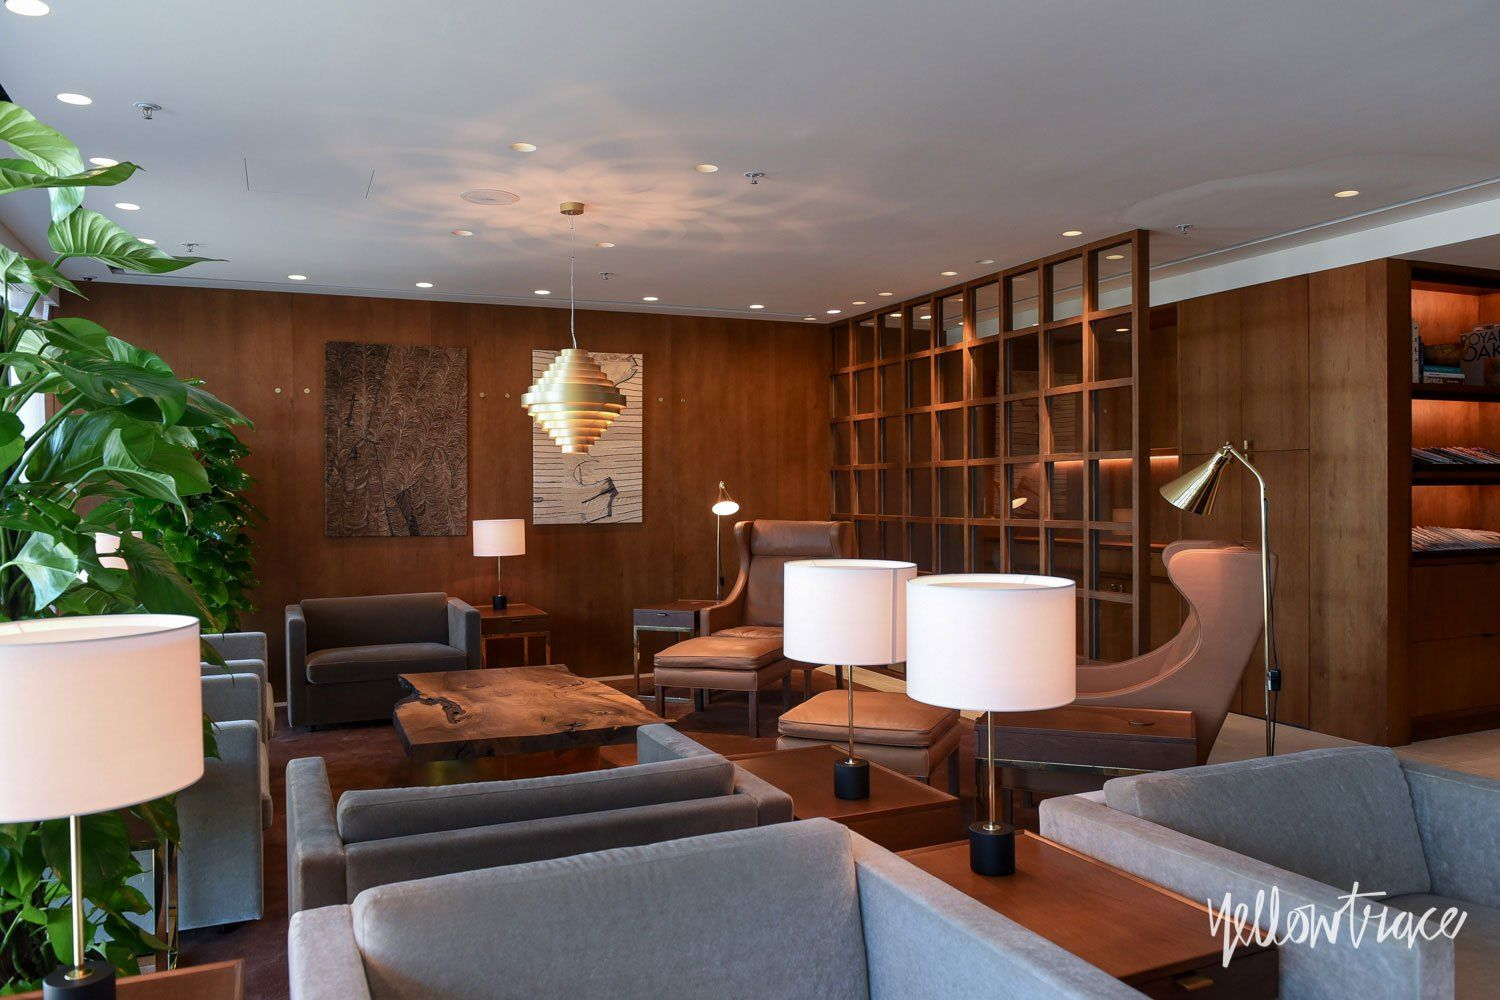 Cathay Pacific S The Pier First Class Lounge In Hong Kong